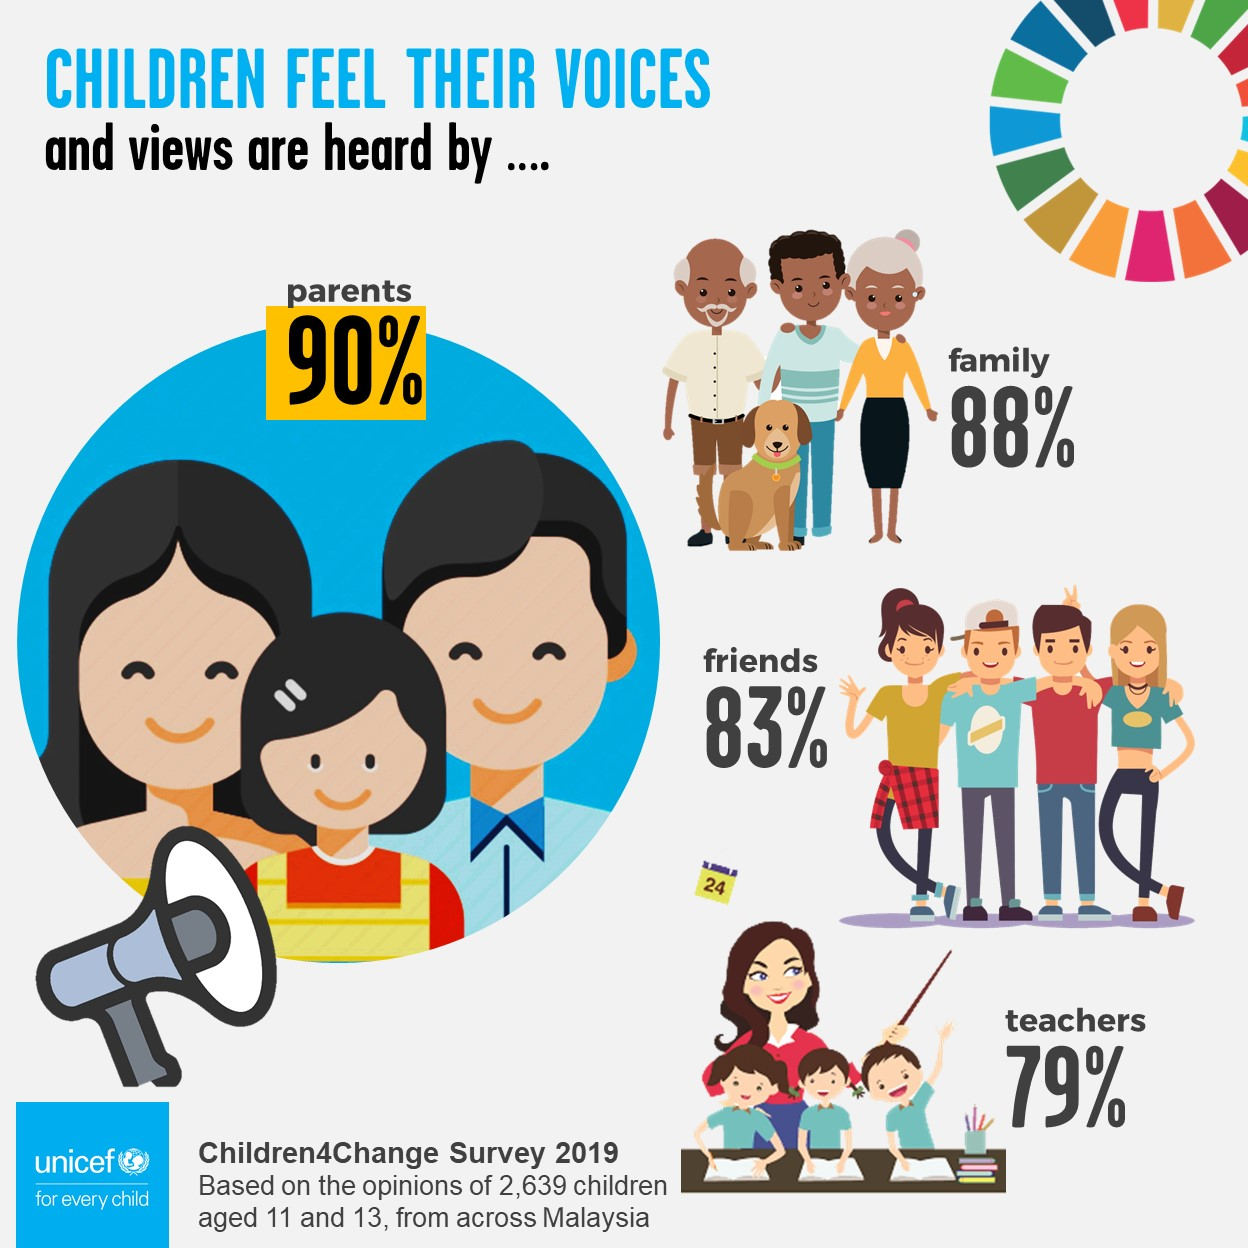 Children4Change Poll 2019 - Am I heard